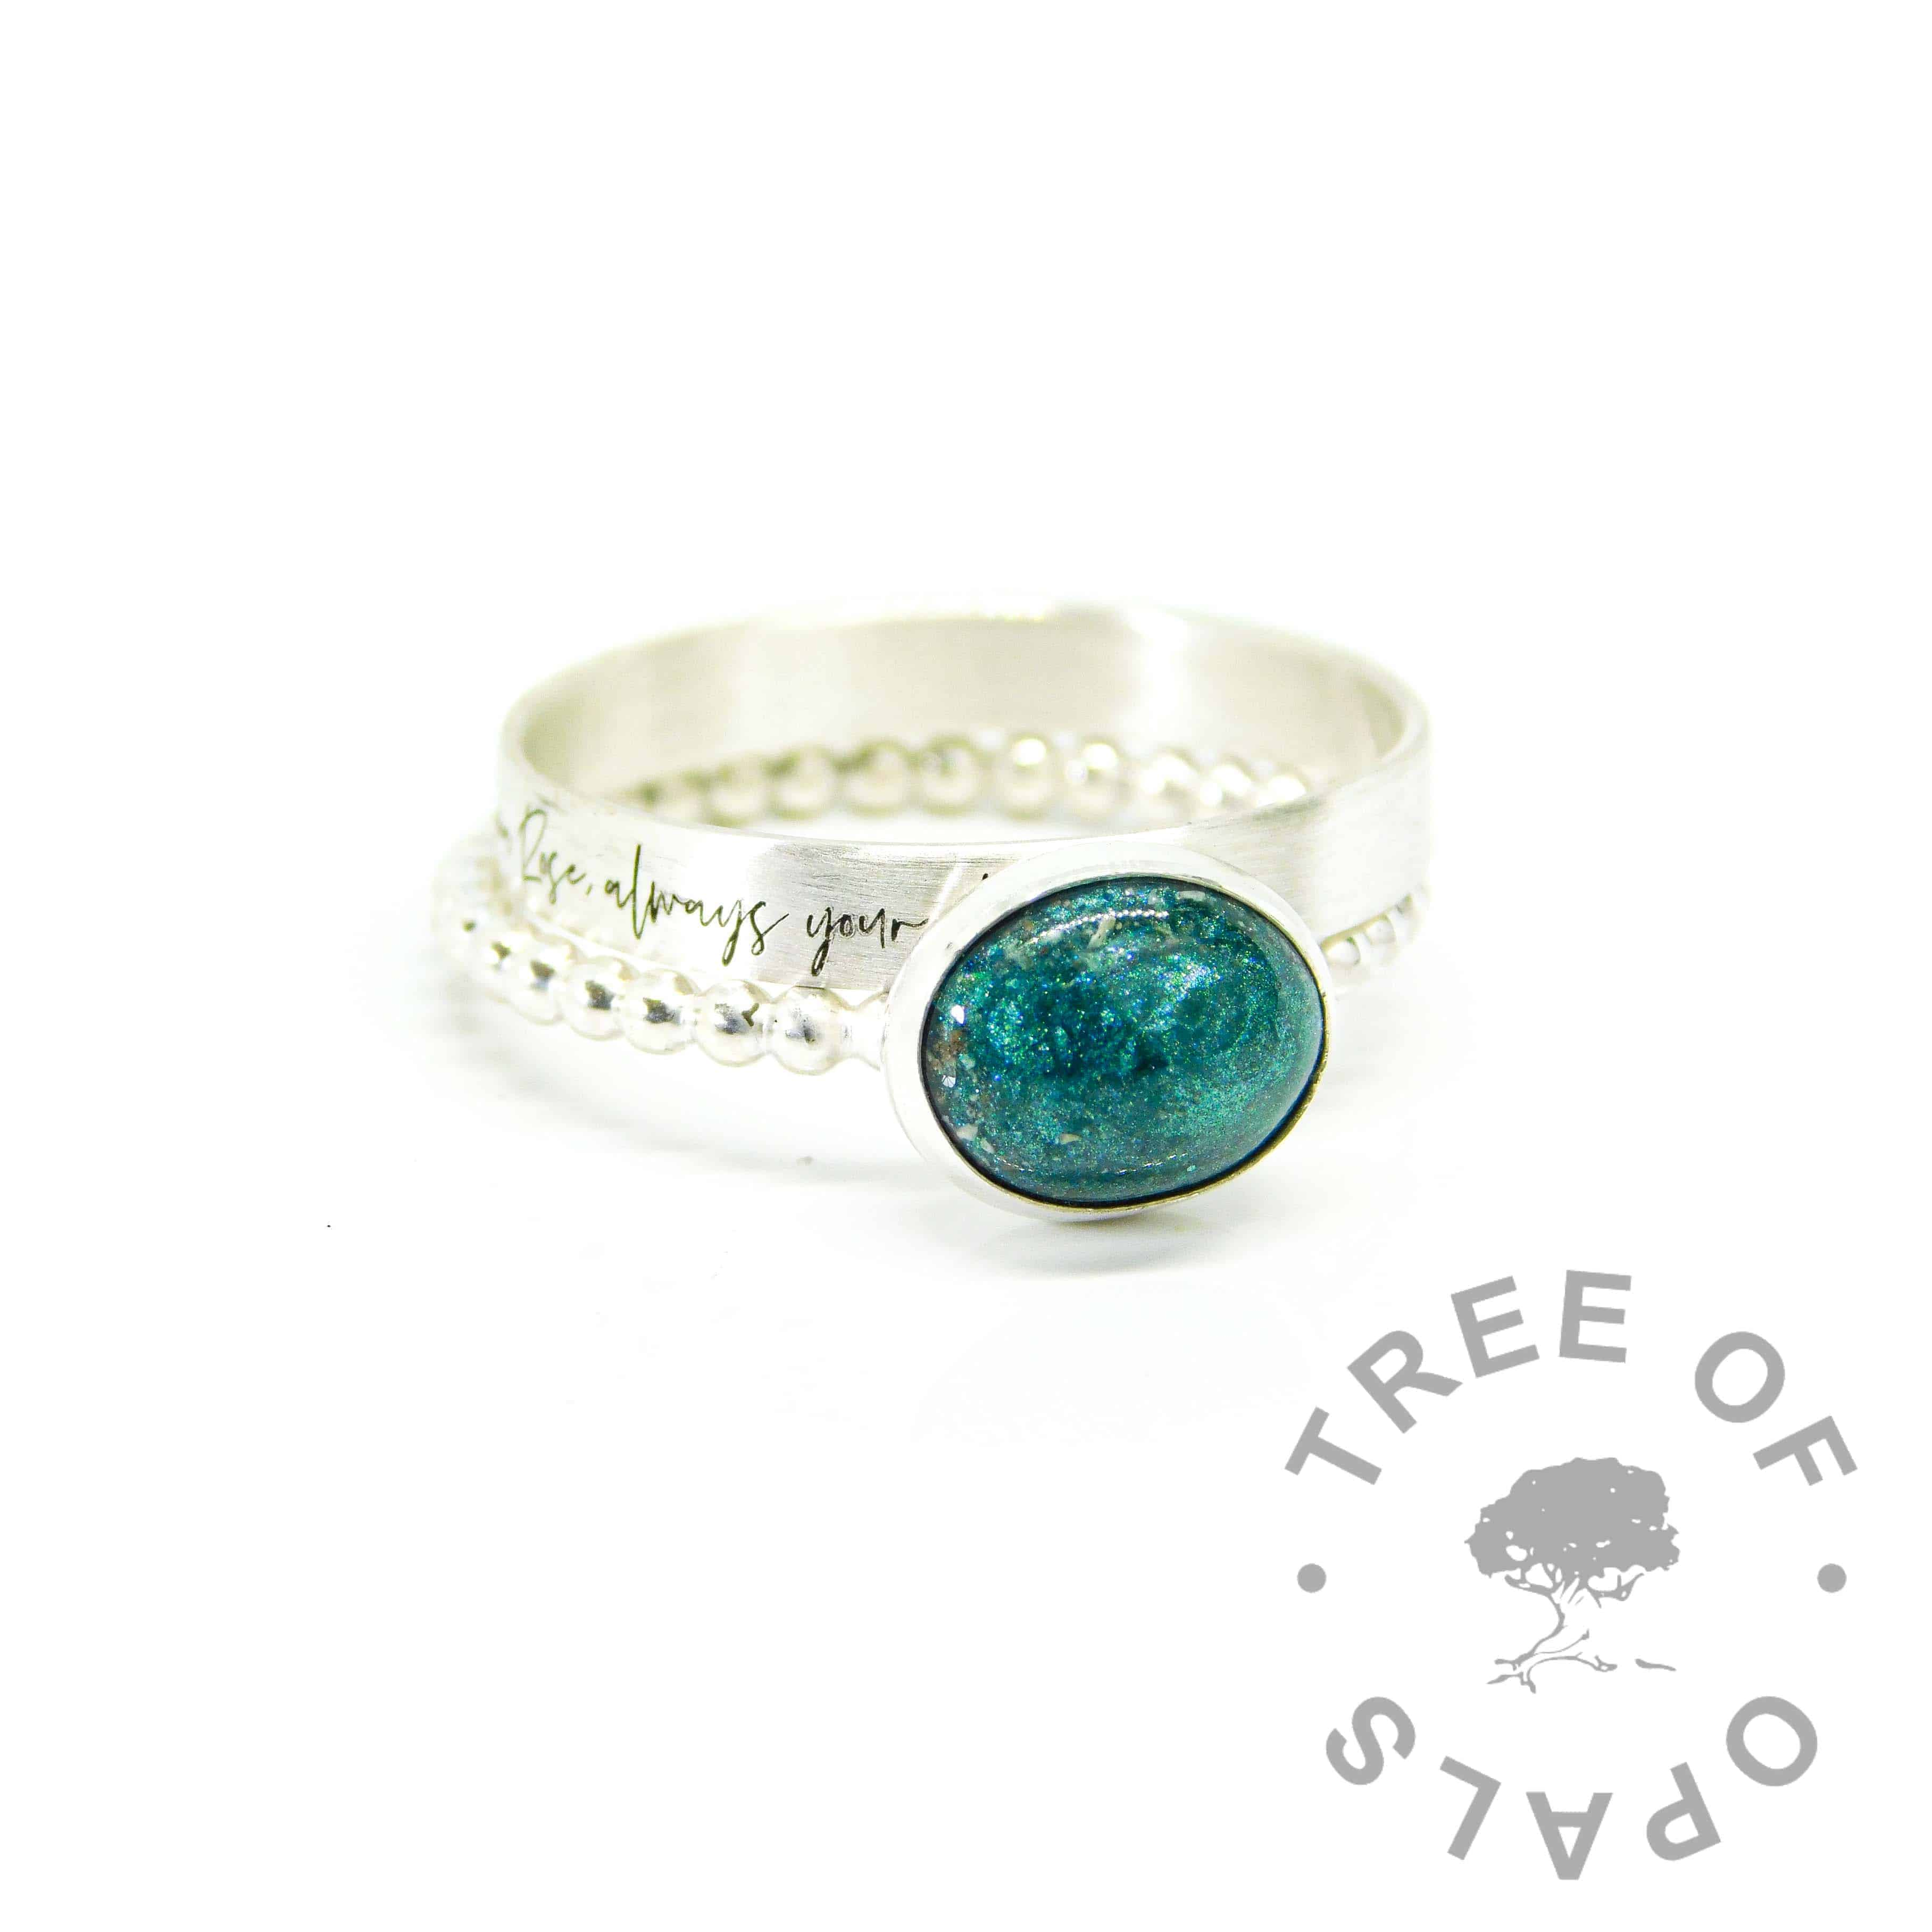 silver south script brushed ring, 3mm wide brushed stacking band. Ashes ring on bubble band with mermaid teal resin sparkle mix